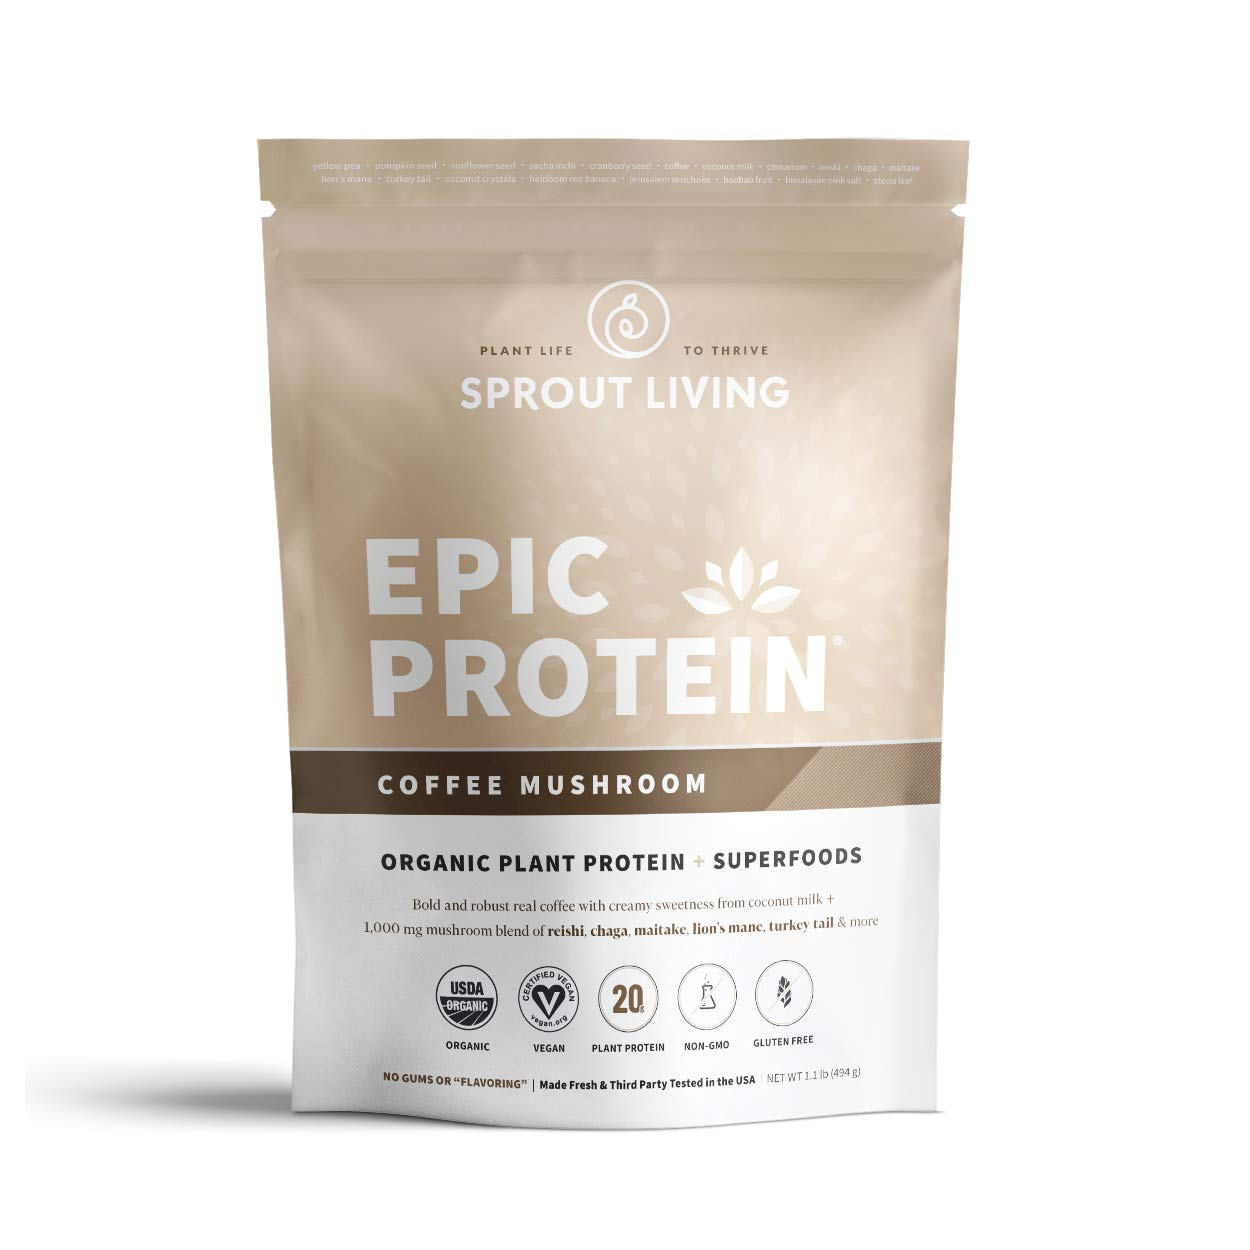 Sprout Living Epic Protein Powder, Coffee Mushroom Flavor, Organic Plant Protein, Gluten Free, No Additives, 20 Grams Protein, Adaptogenic Mushrooms (1.1 Pound,13 Servings)